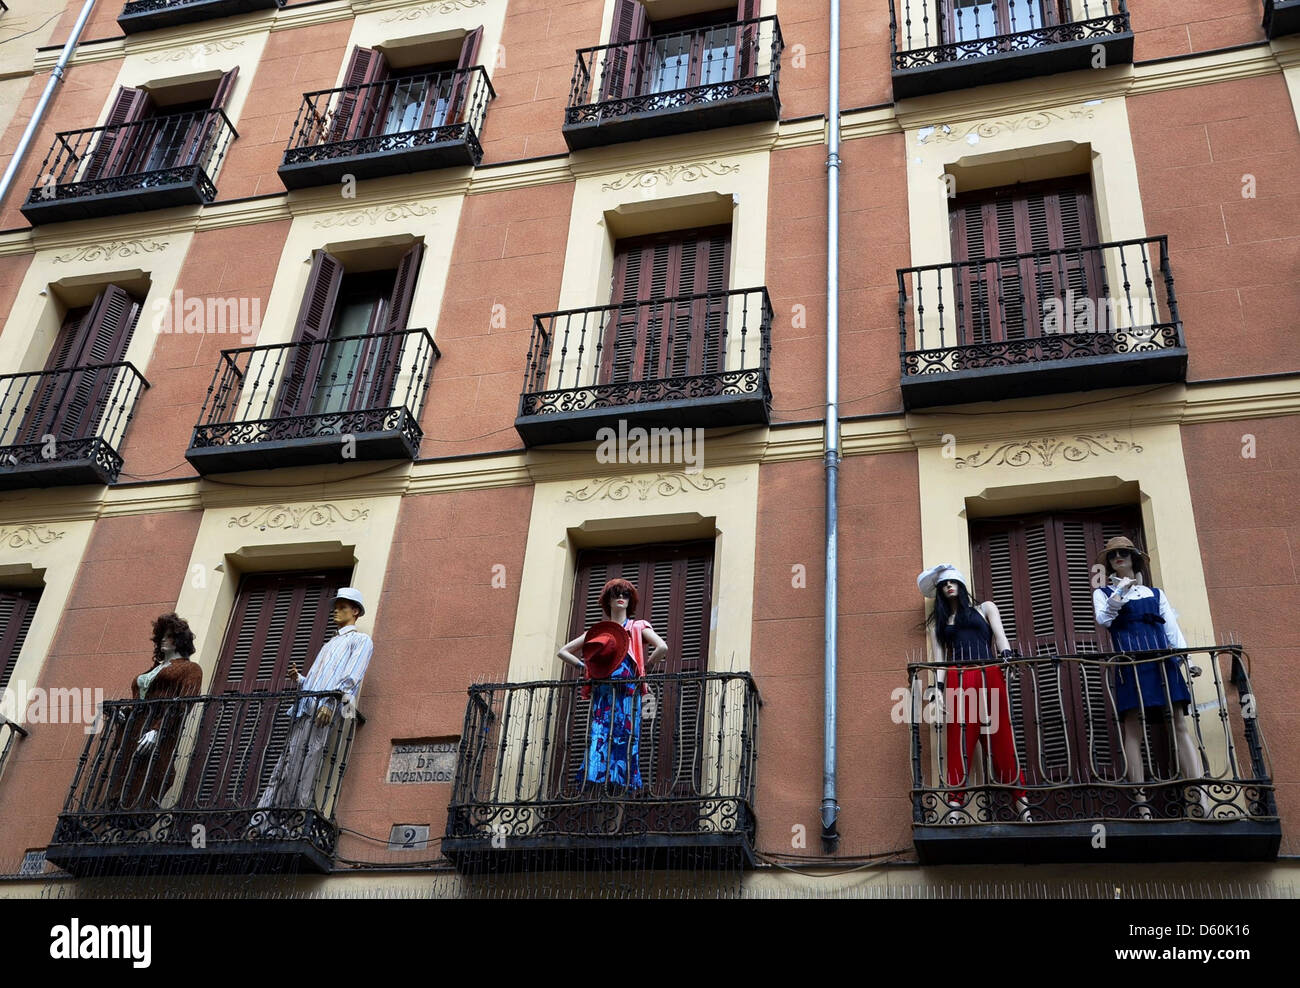 Clothes models at a window in Madrid - Stock Image